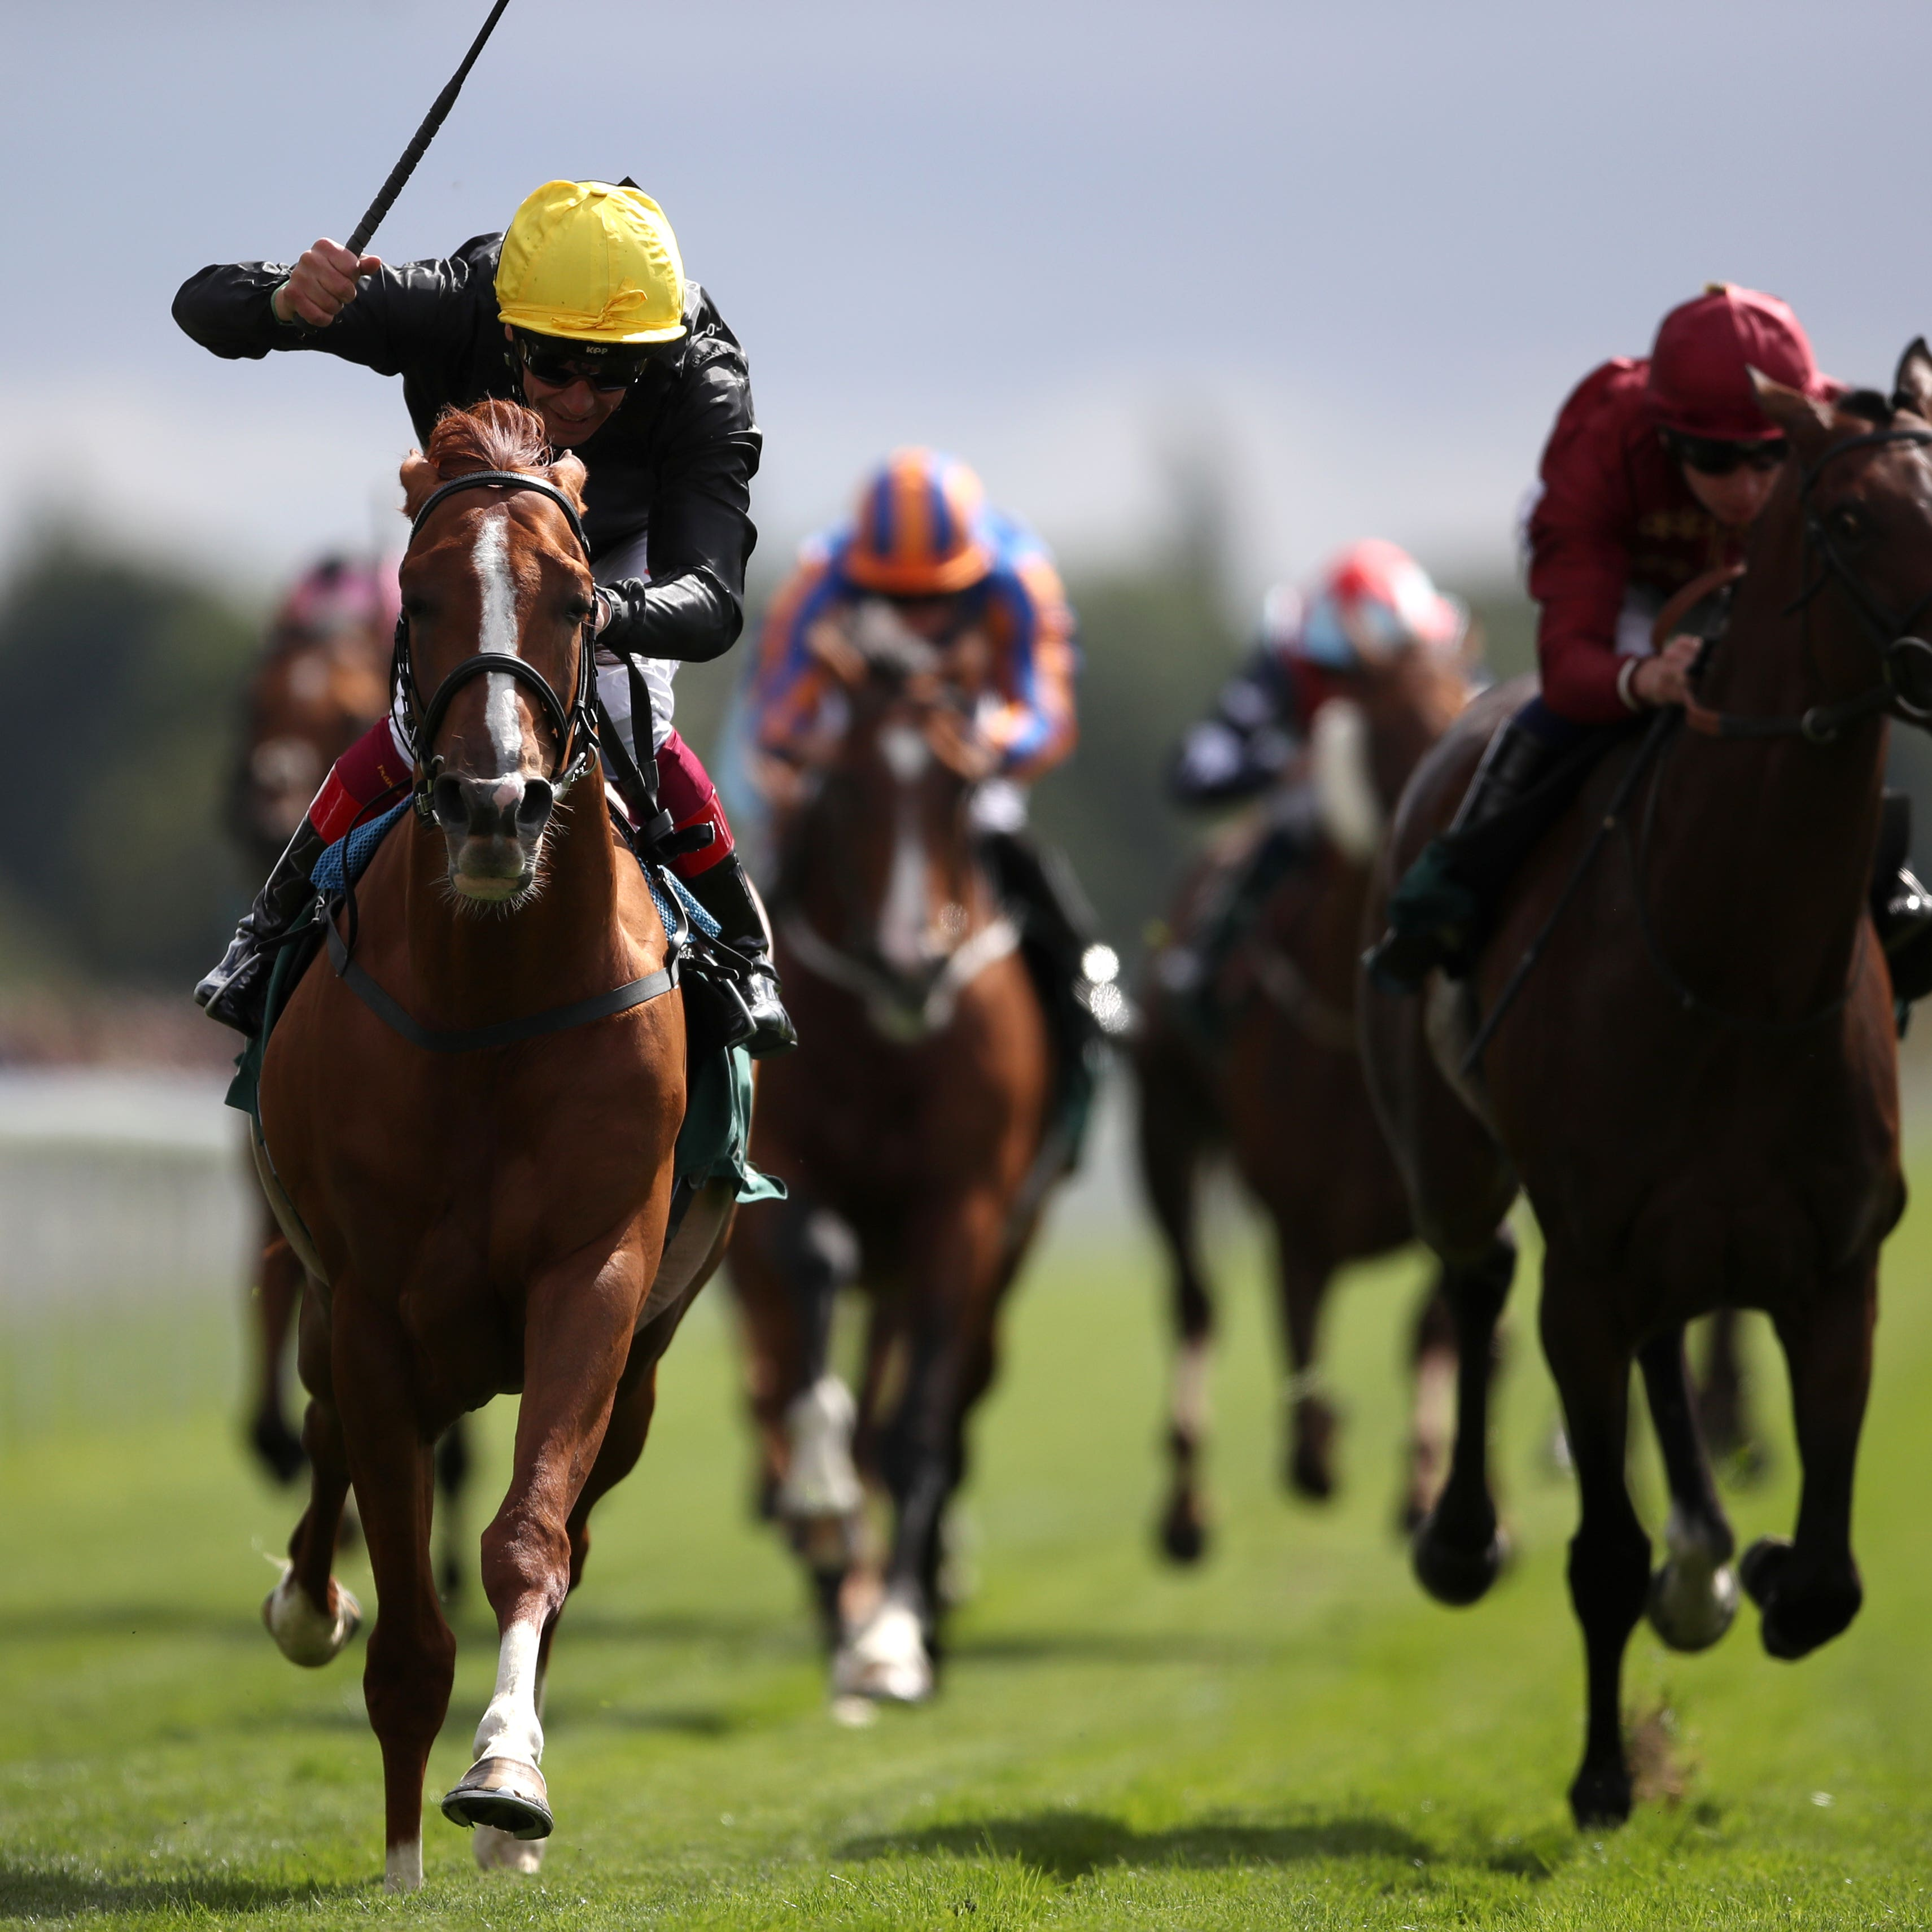 Stradivarius and Frankie Dettori (left) win the Weatherbys Hamilton Lonsdale Cup Stakes at York to claim the WH Stayers' Million (